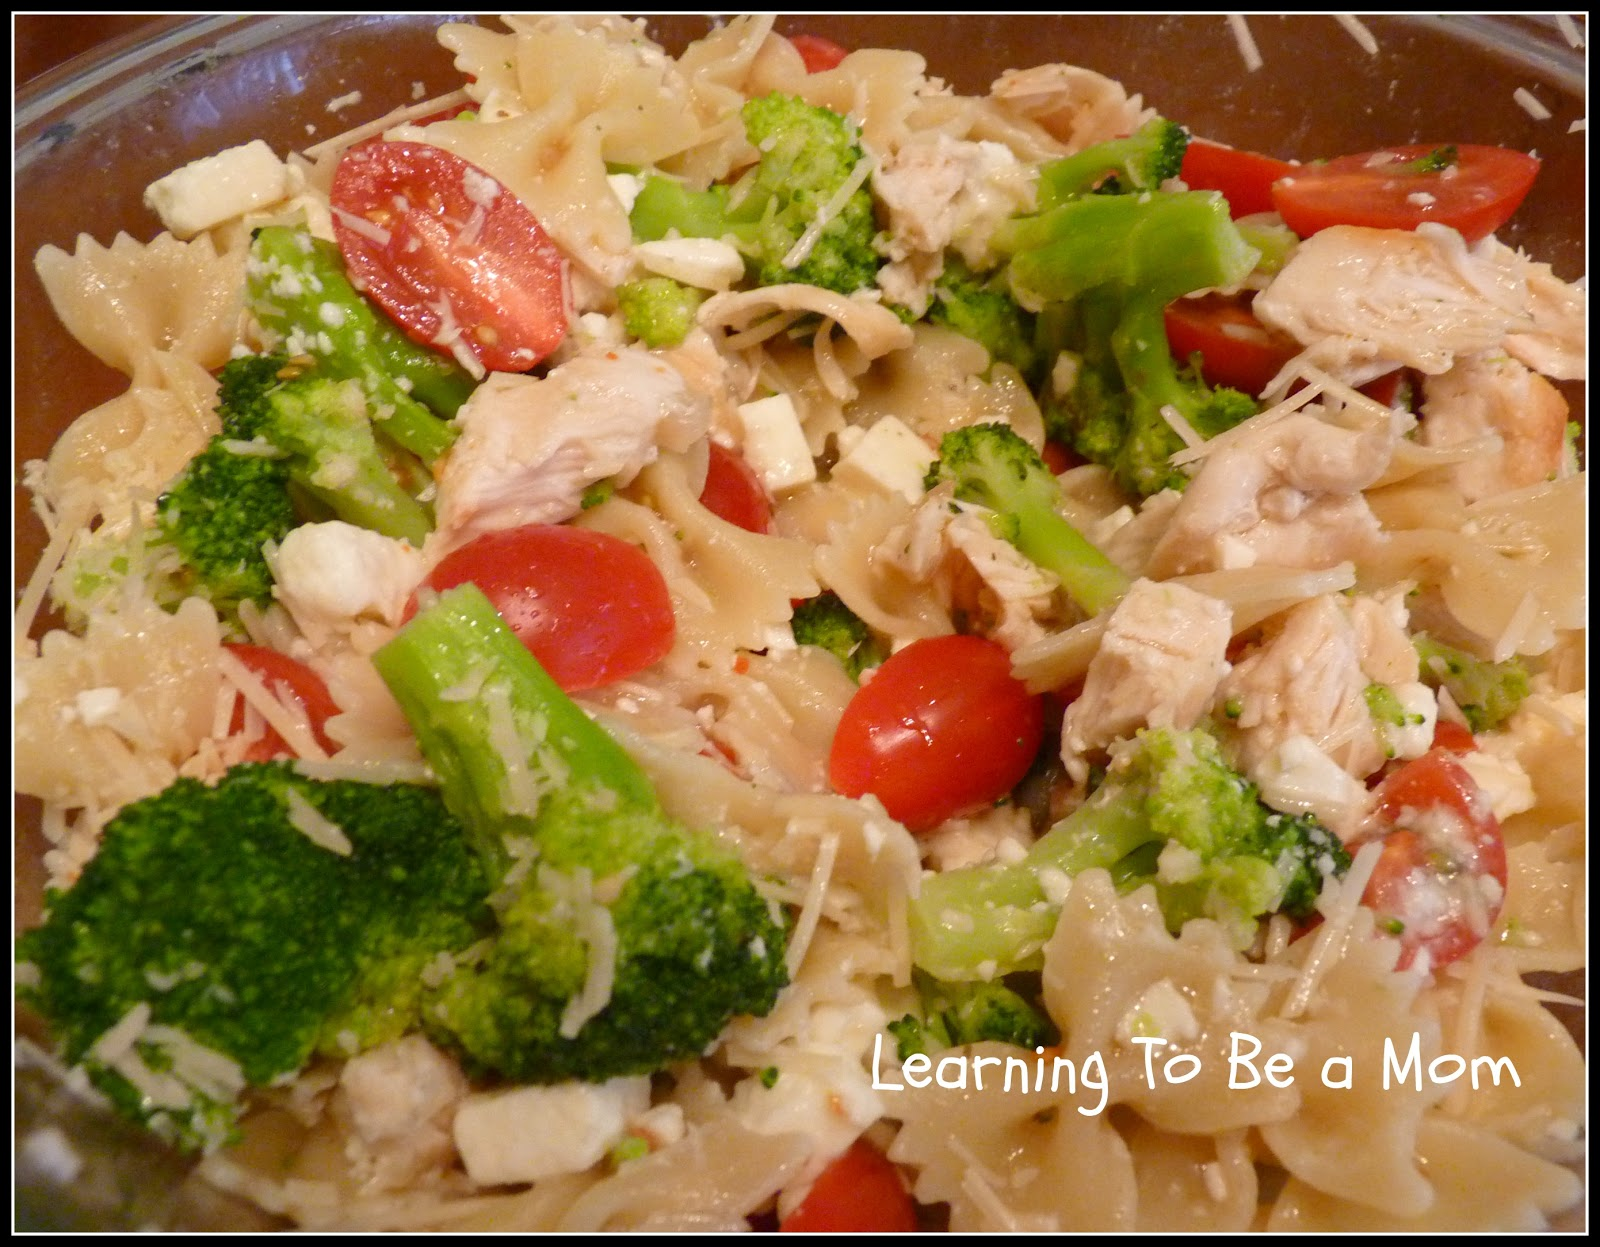 Learning To Be a Mom: Chicken Bow Tie Pasta Salad